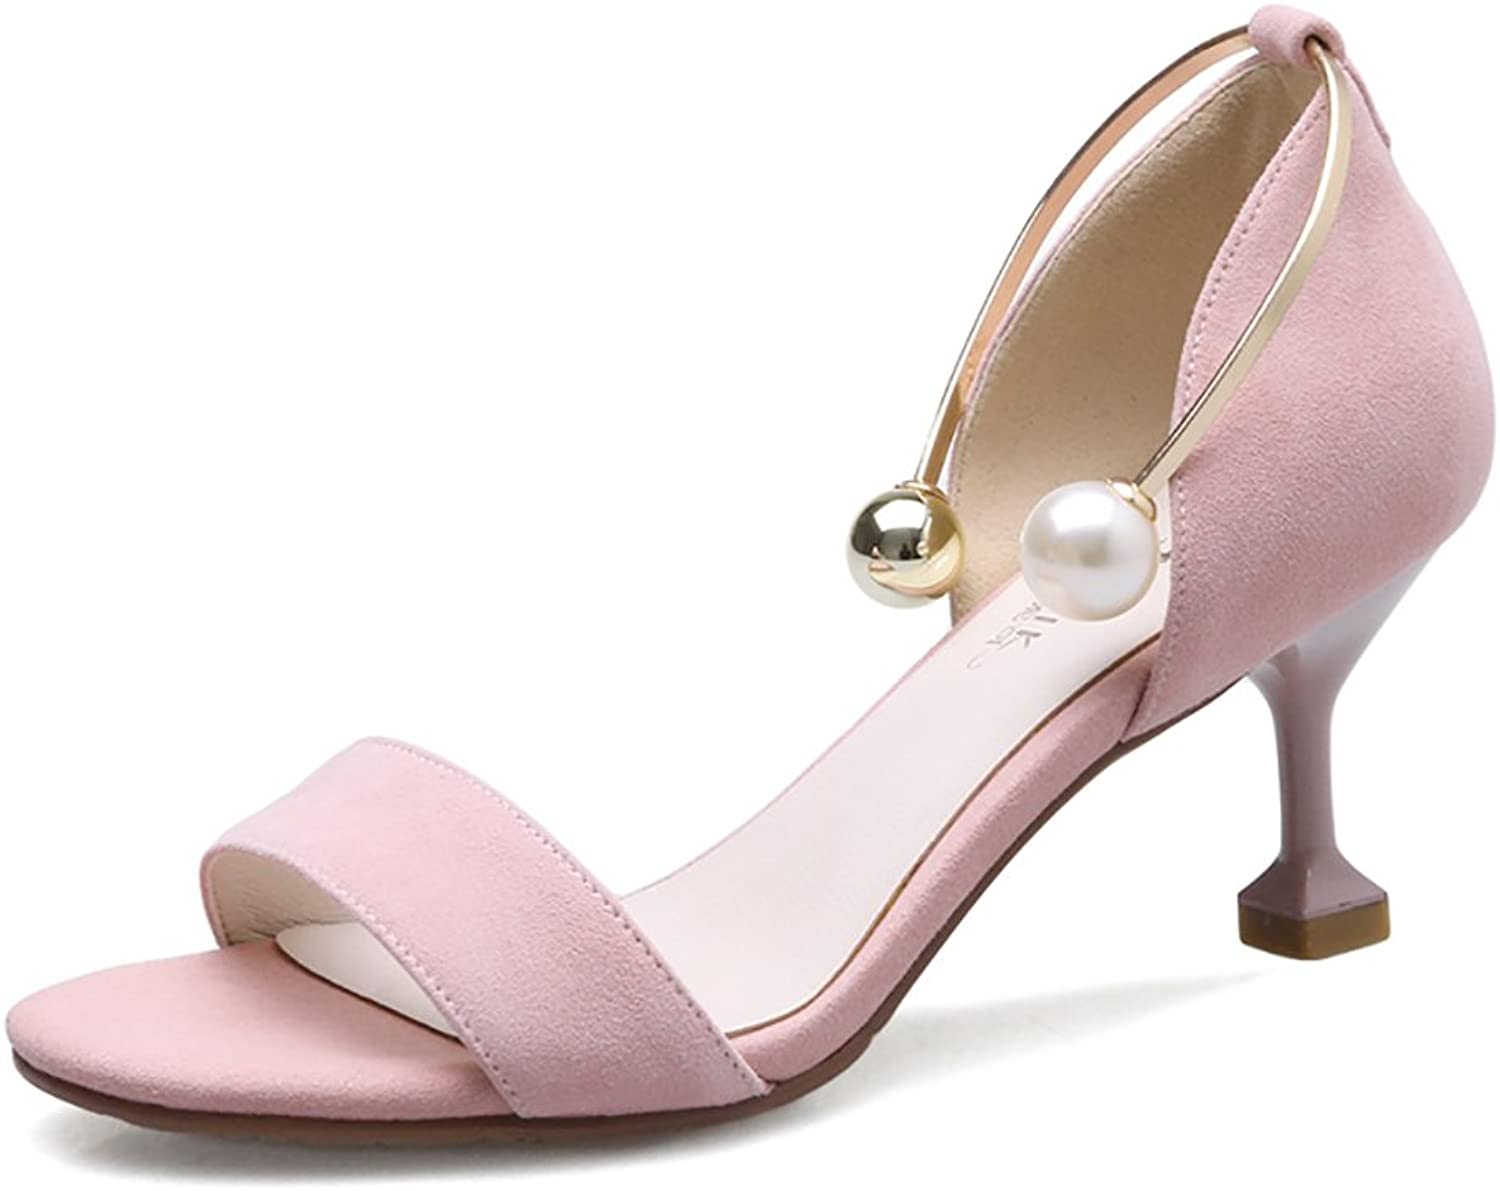 Sandals Women's Imitation Pearls Metal High Heels Ankle Straps Casual shoes ( color   Pink , Size   37 )